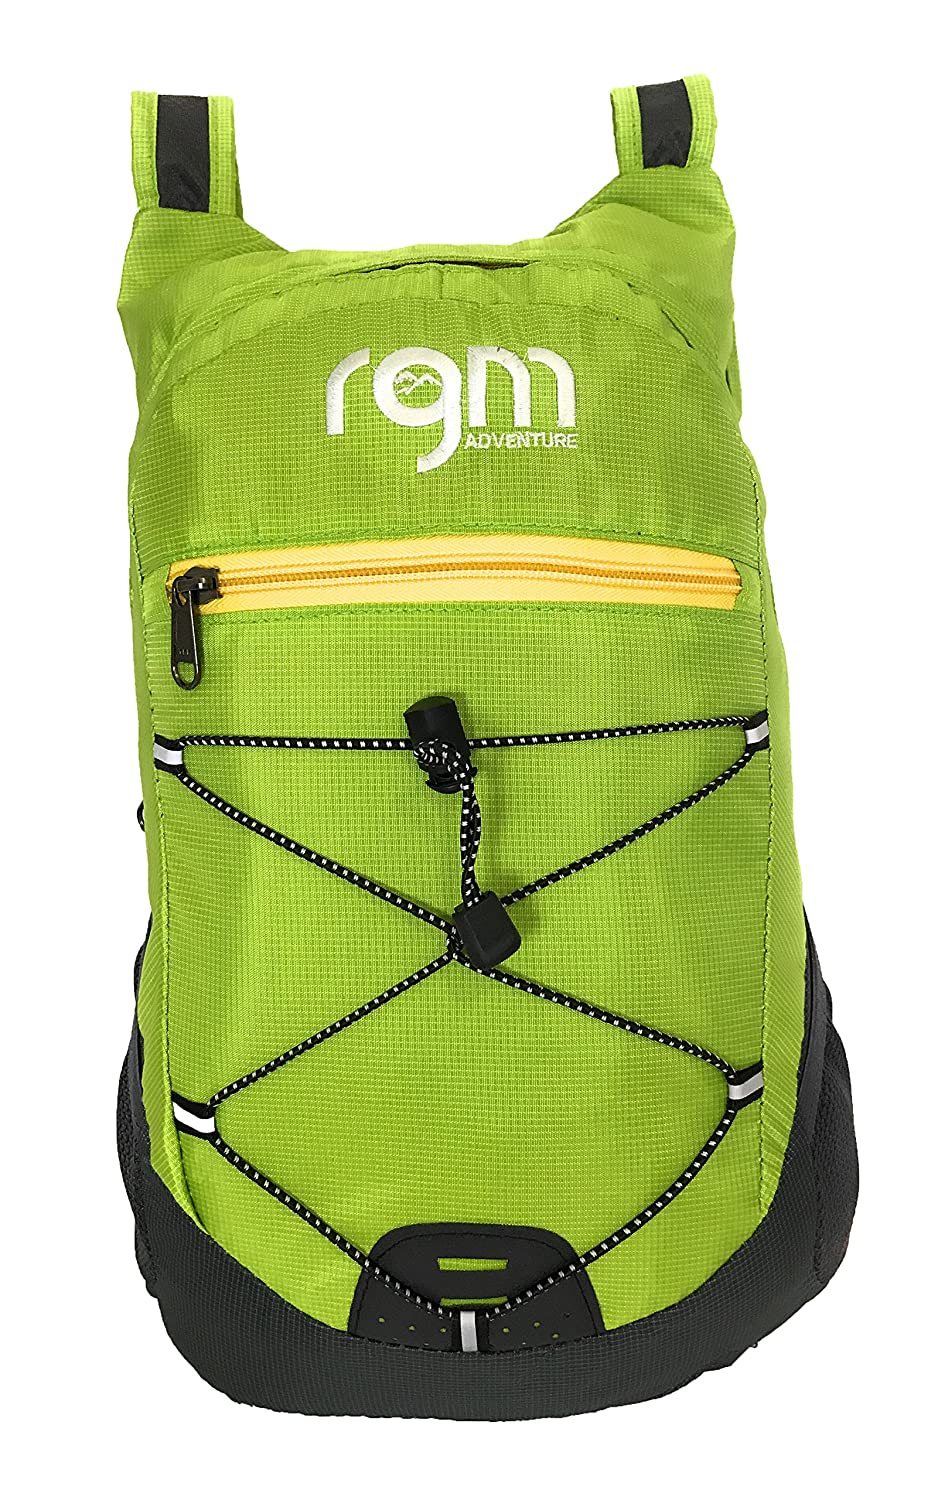 Packable Backpack by RGM Adventure | The Perfect Small Daypack for Travel, Hiking, Biking, Sports, and More. RGM ~ Explore Everything best